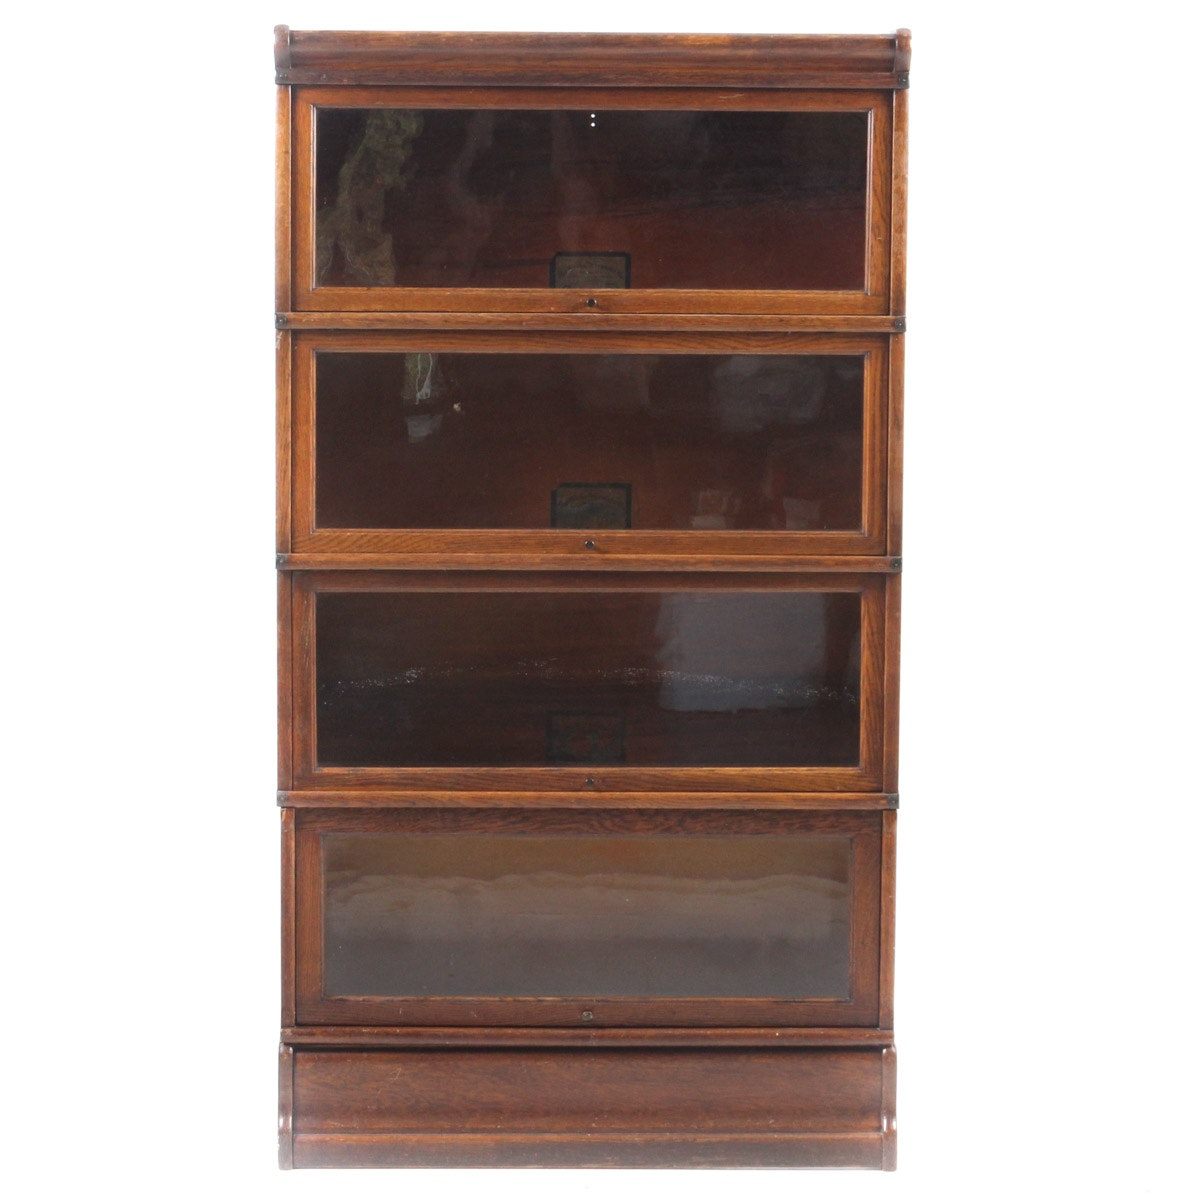 Antique Oak Barrister Bookcase by The Globe-Wernicke Co.